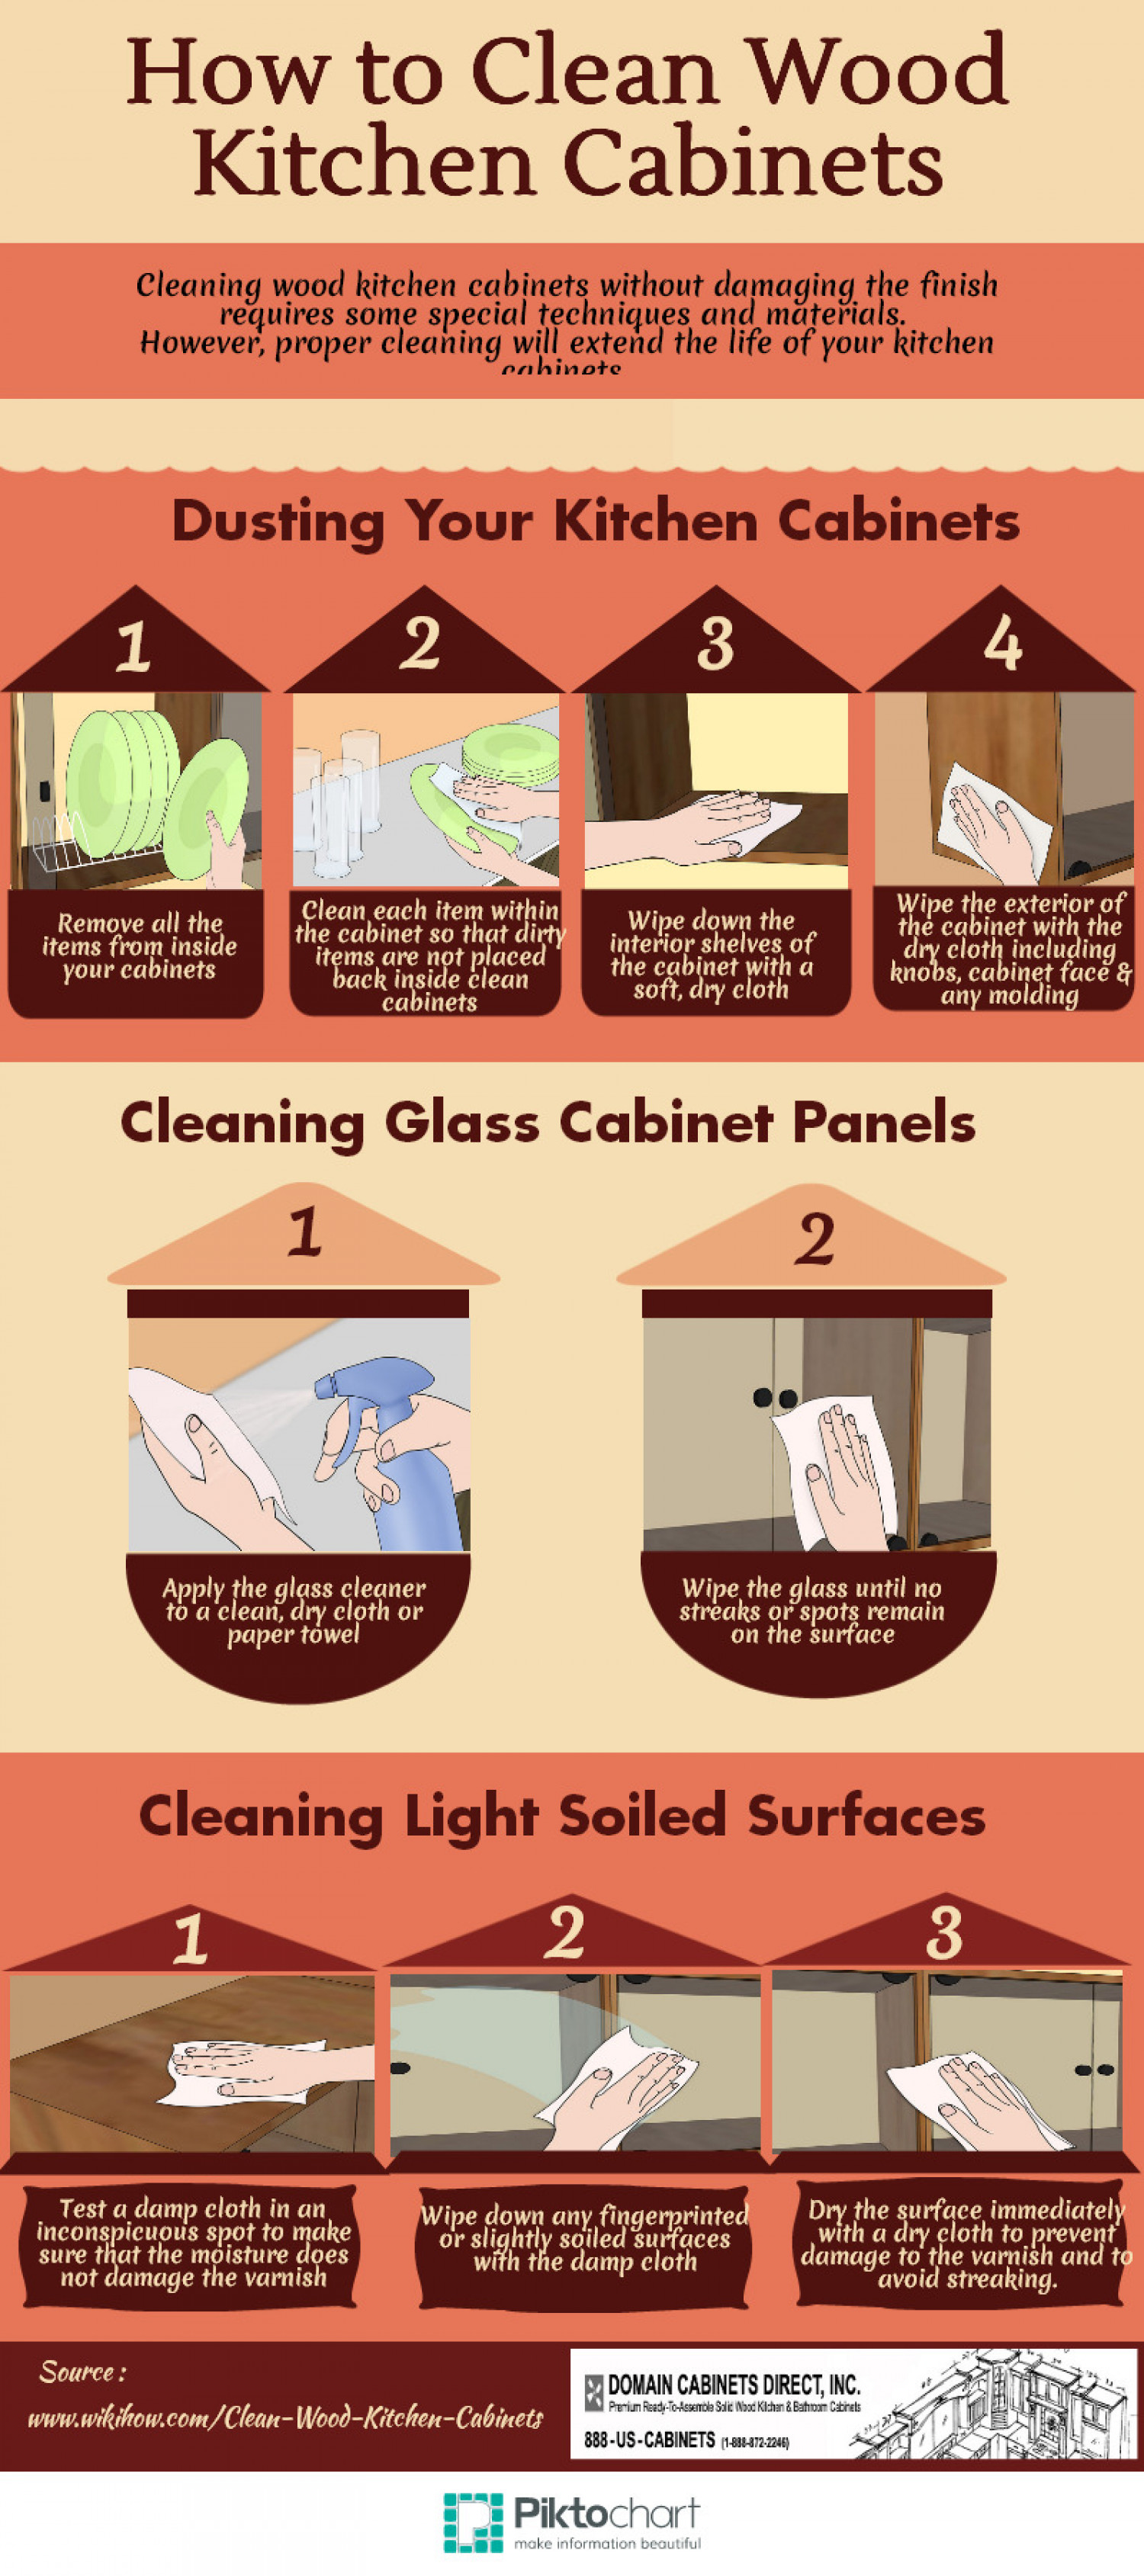 how to clean wood kitchen cabinets visual ly tips to clean wood kitchen cabinets my kitchen interior